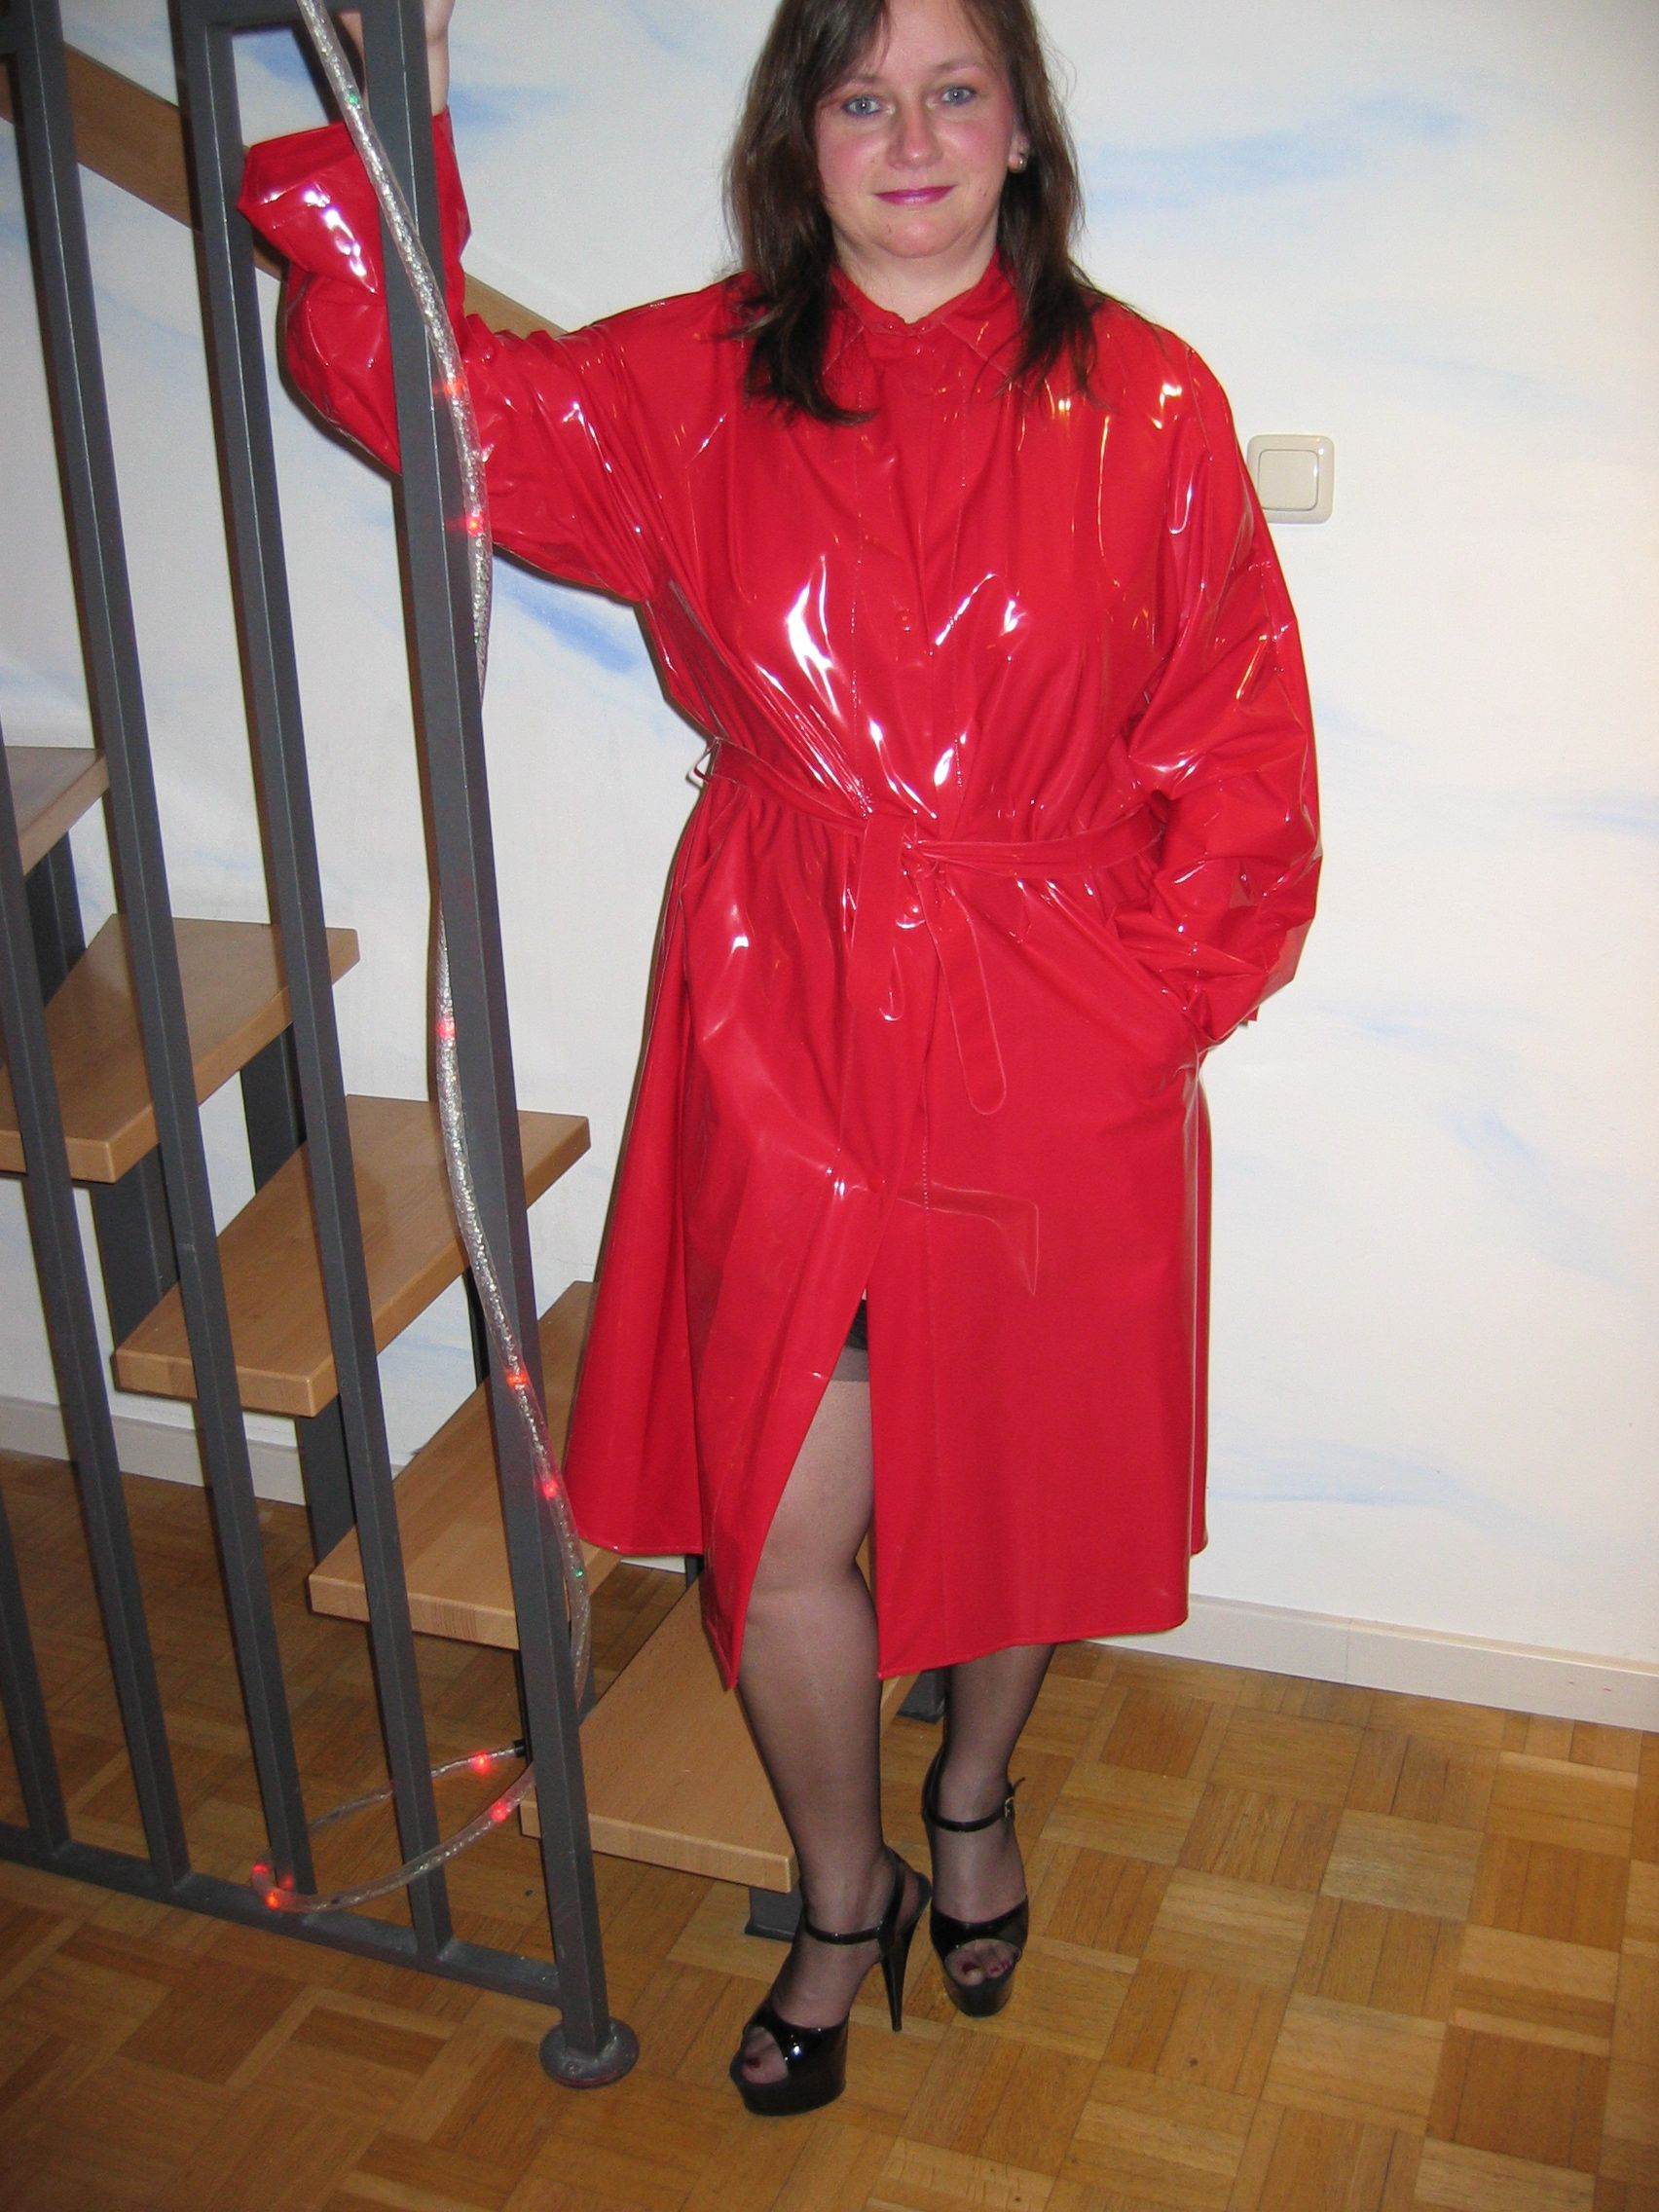 Pin on Real Amateurs wearing PVC, Lack, Latex clothing